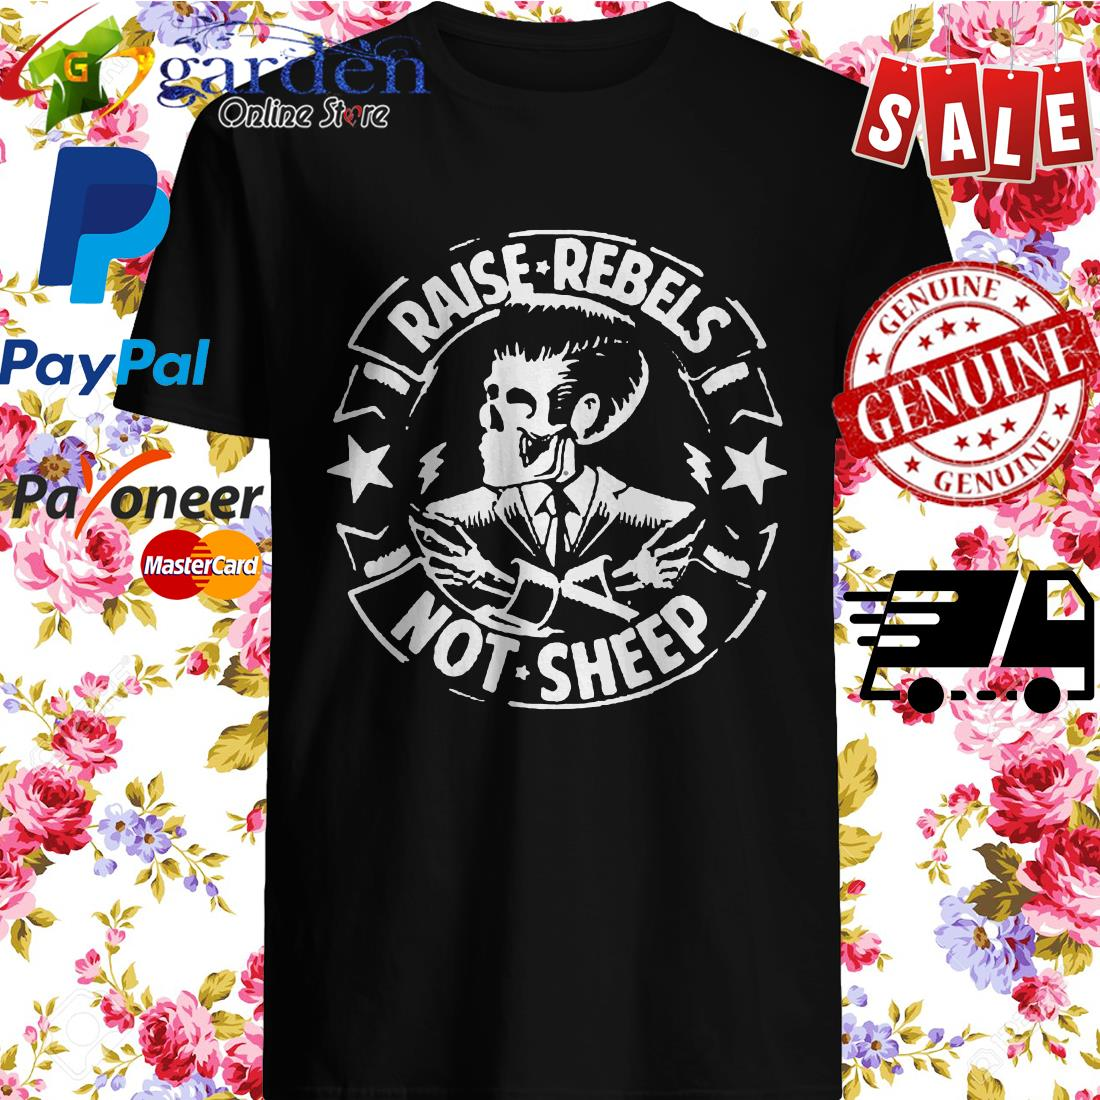 Raise Rebels Not Sheep shirt